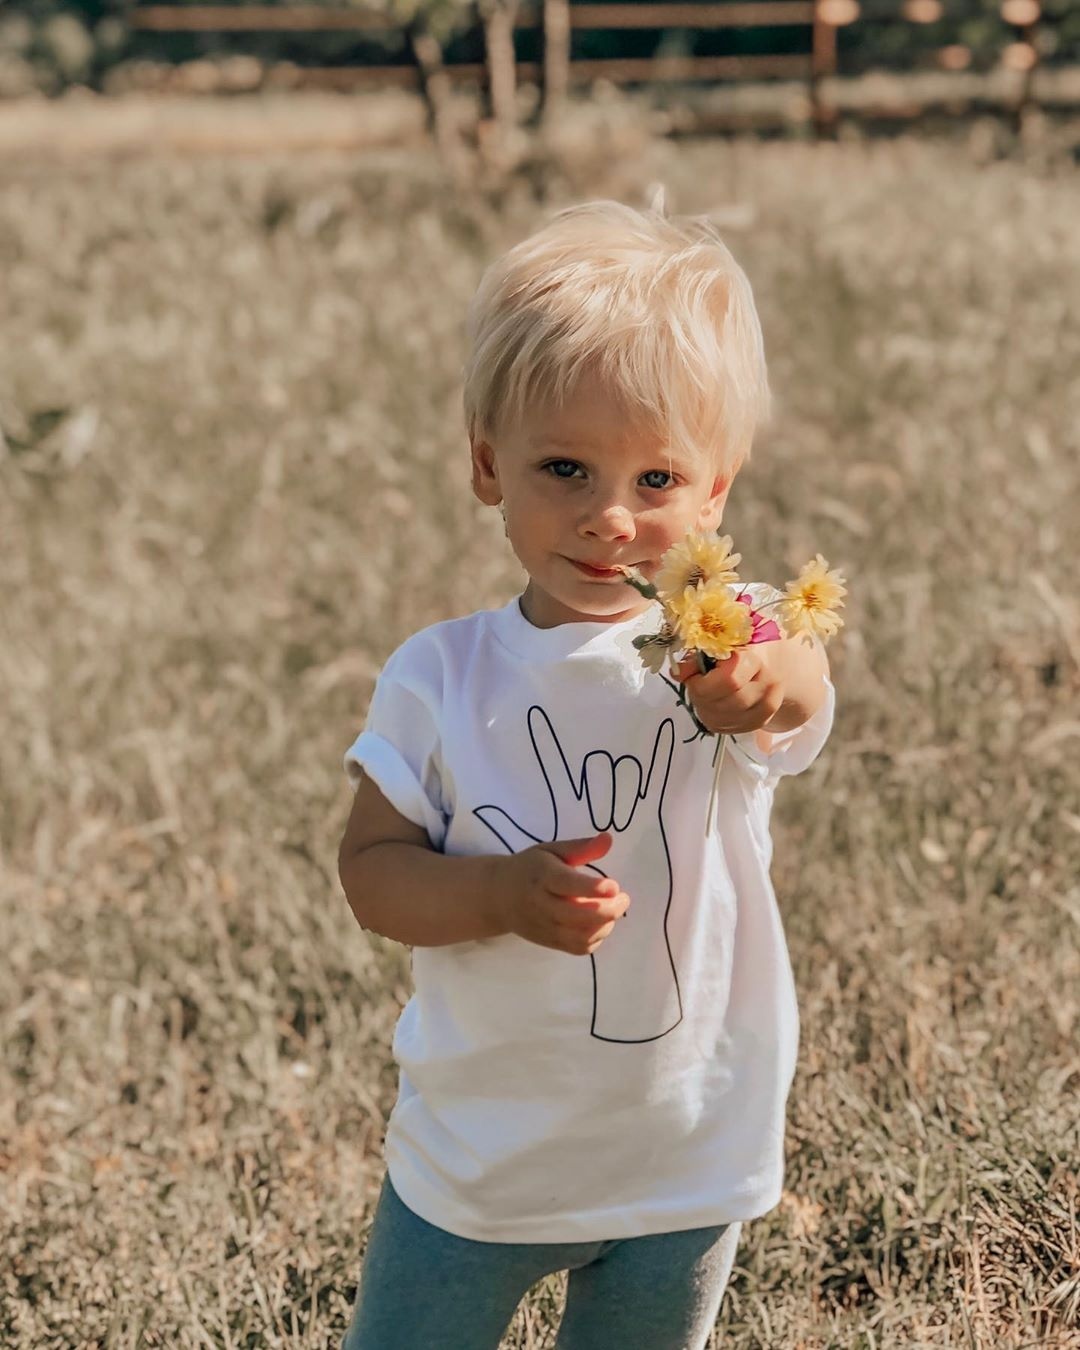 little boy standing in a field, holding out a bouquet of flowers, and wearing a white tee shirt printed with the ASL sing for I love you